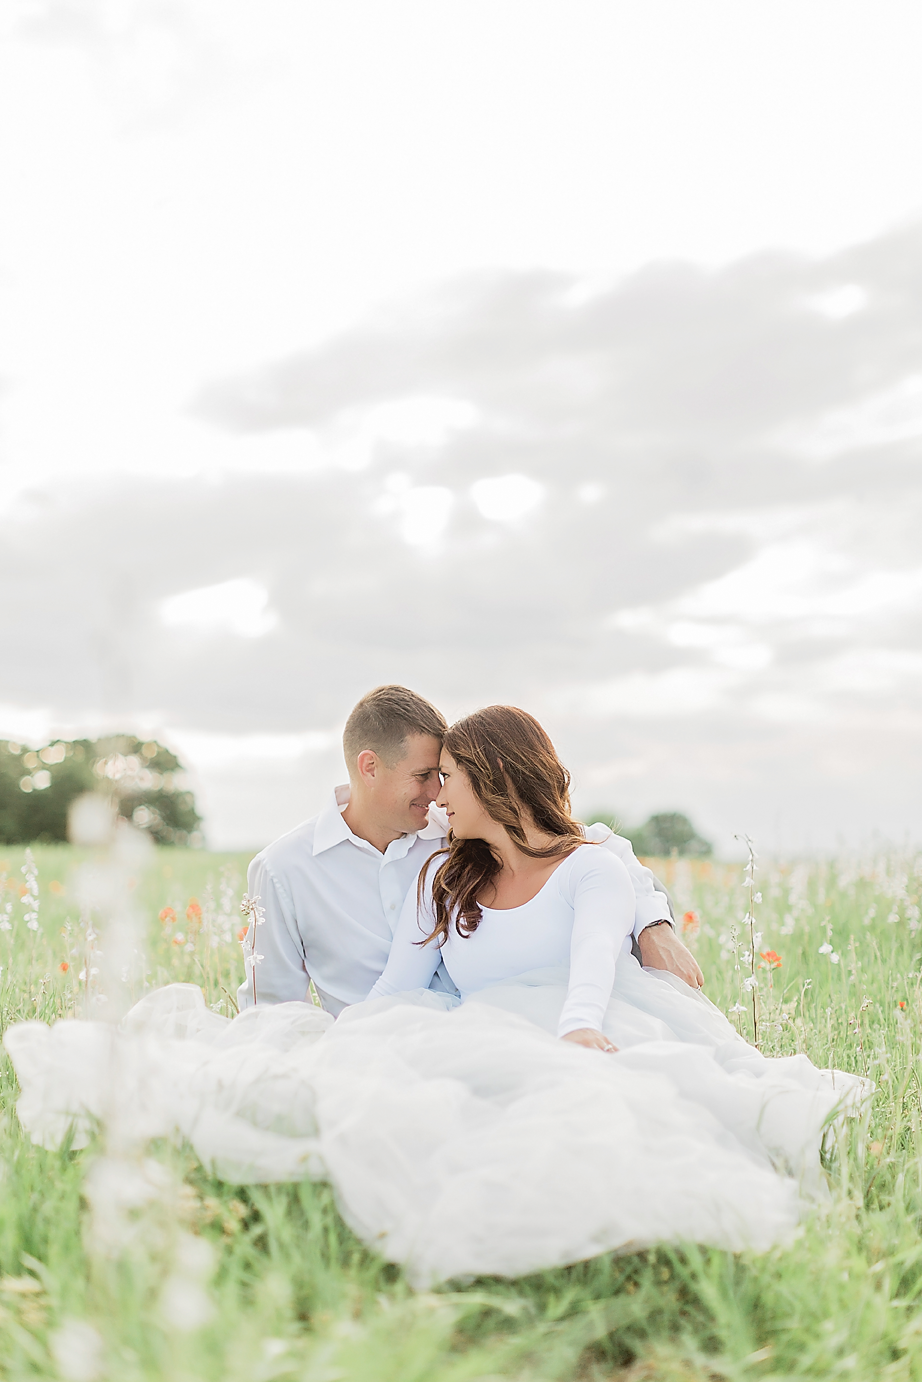 Dallas Wedding Photographer Flower Mound anniversary Photographer Kim Brett Texas Ranch Kate Marie Portraiture 3.png